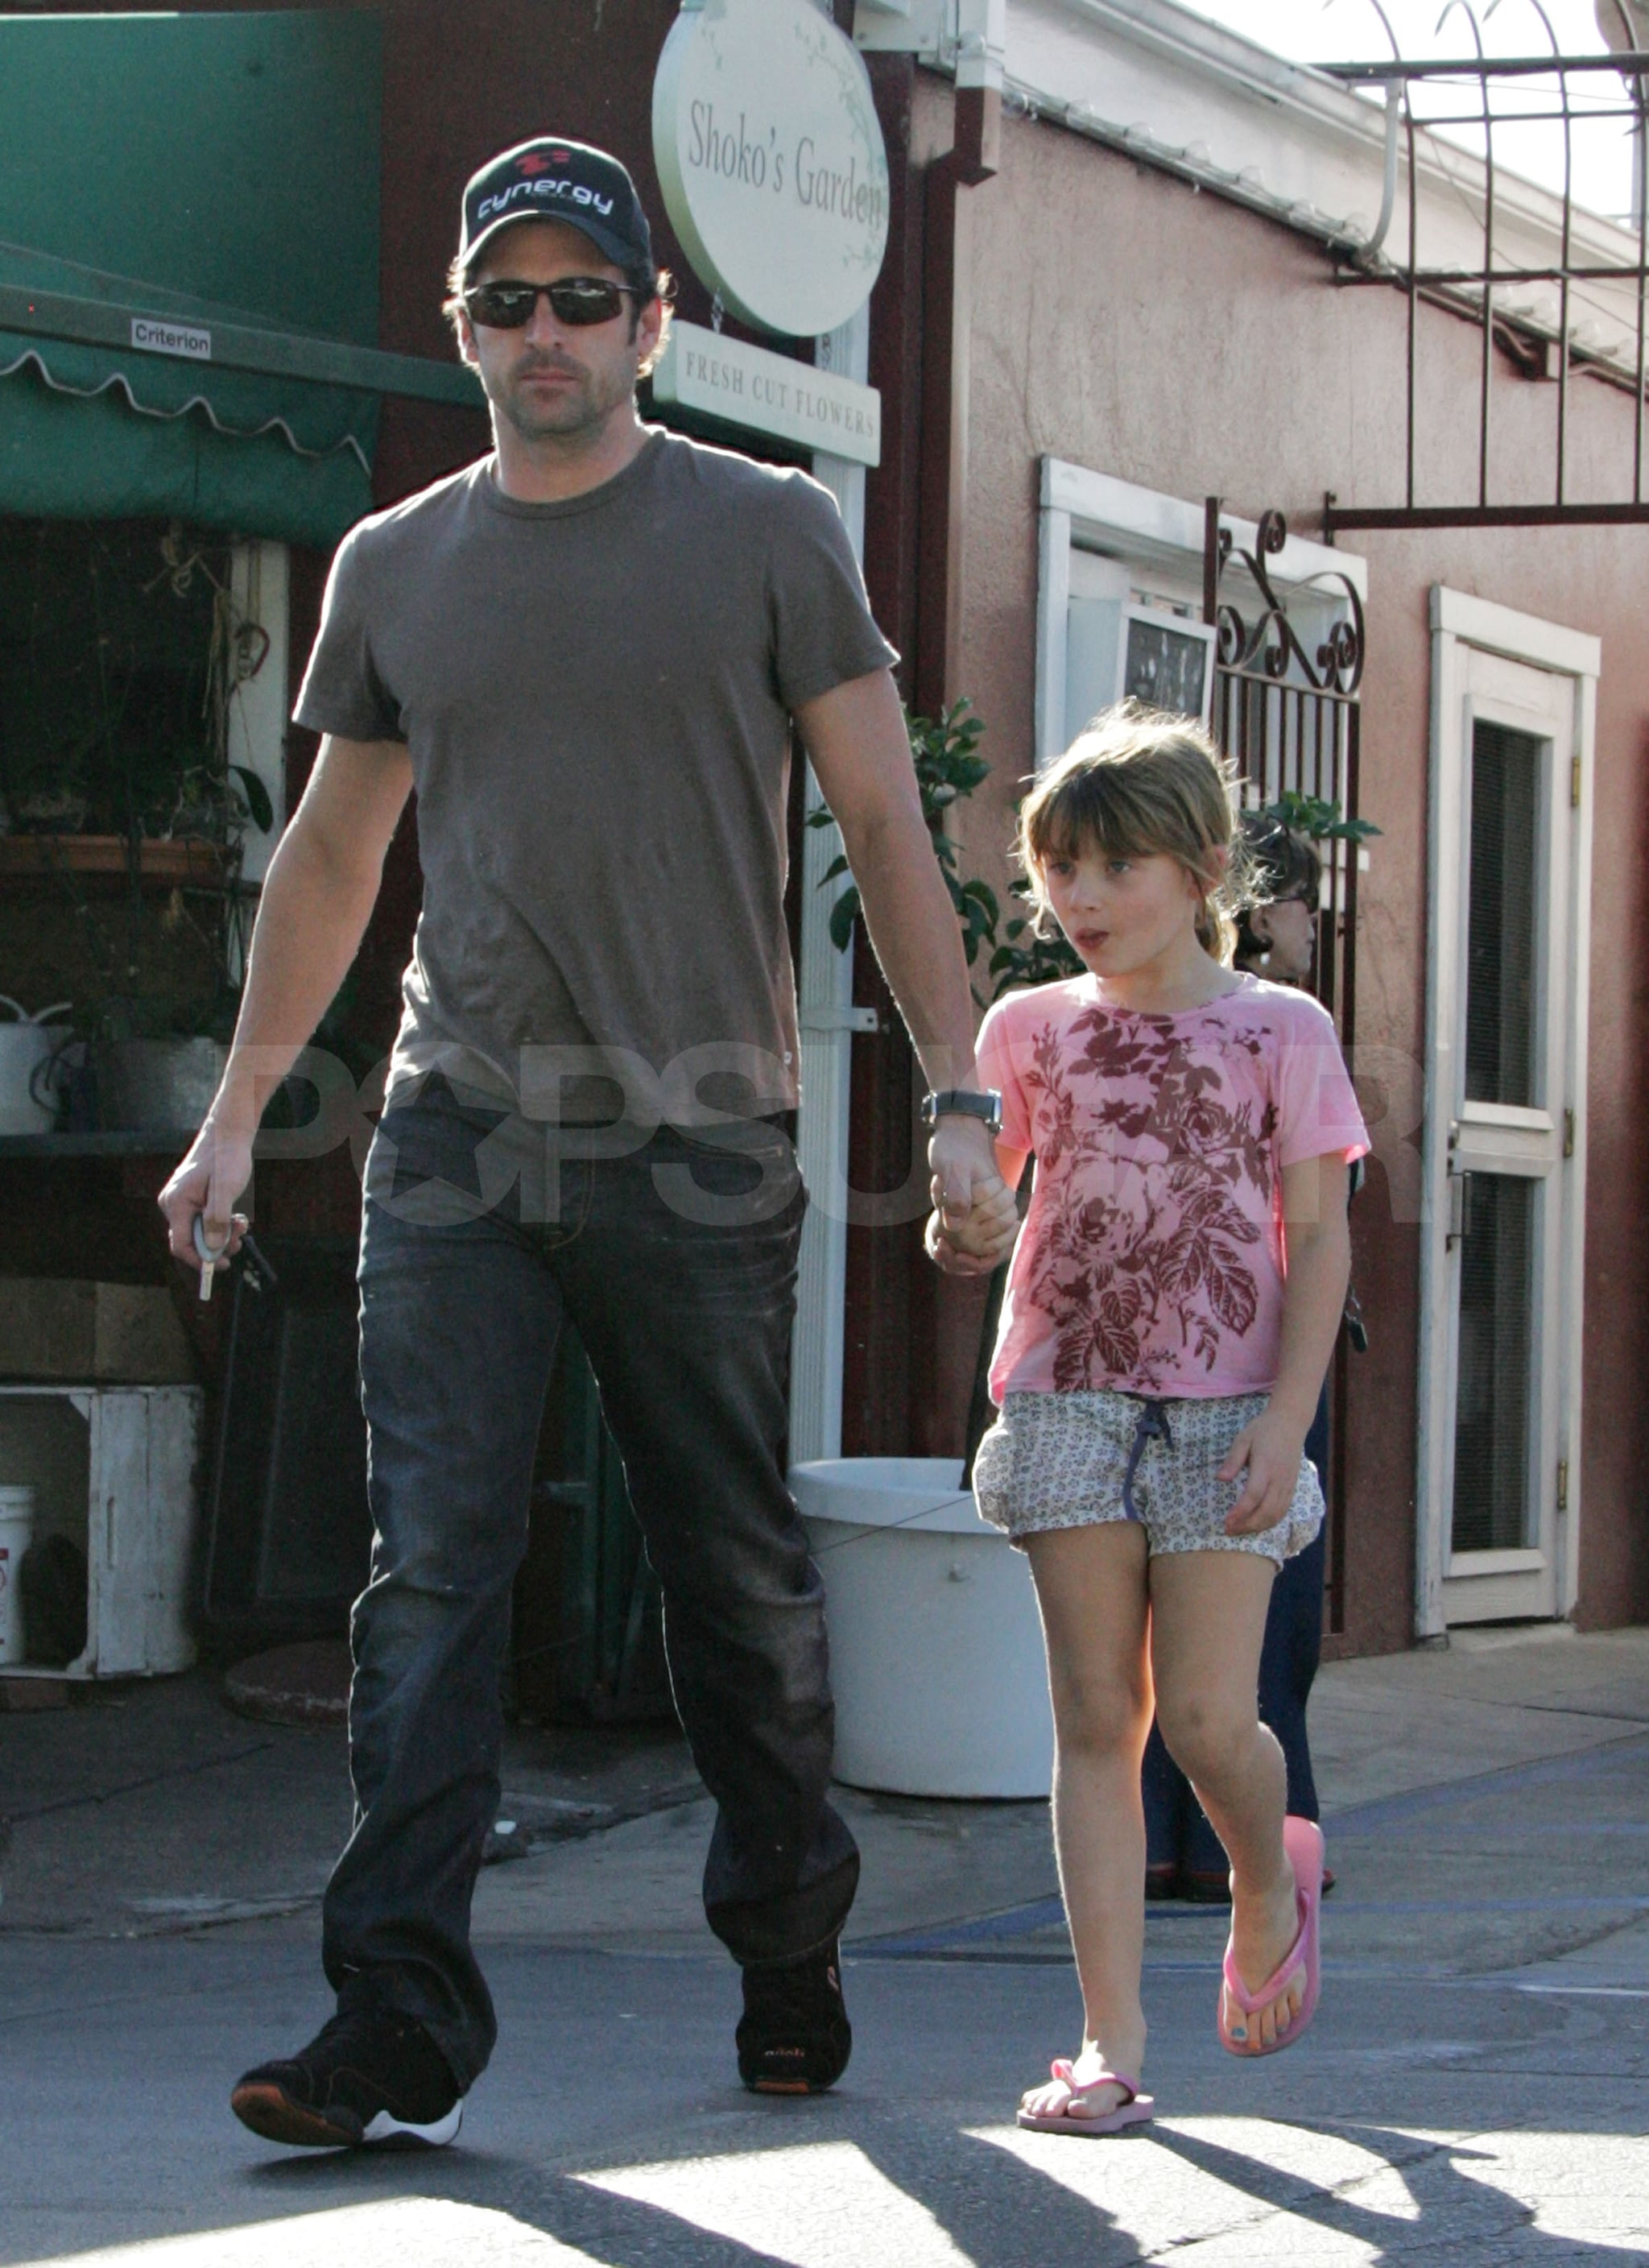 Photos Of Patrick Dempsey With His Daughter Tallulah In Los Angeles